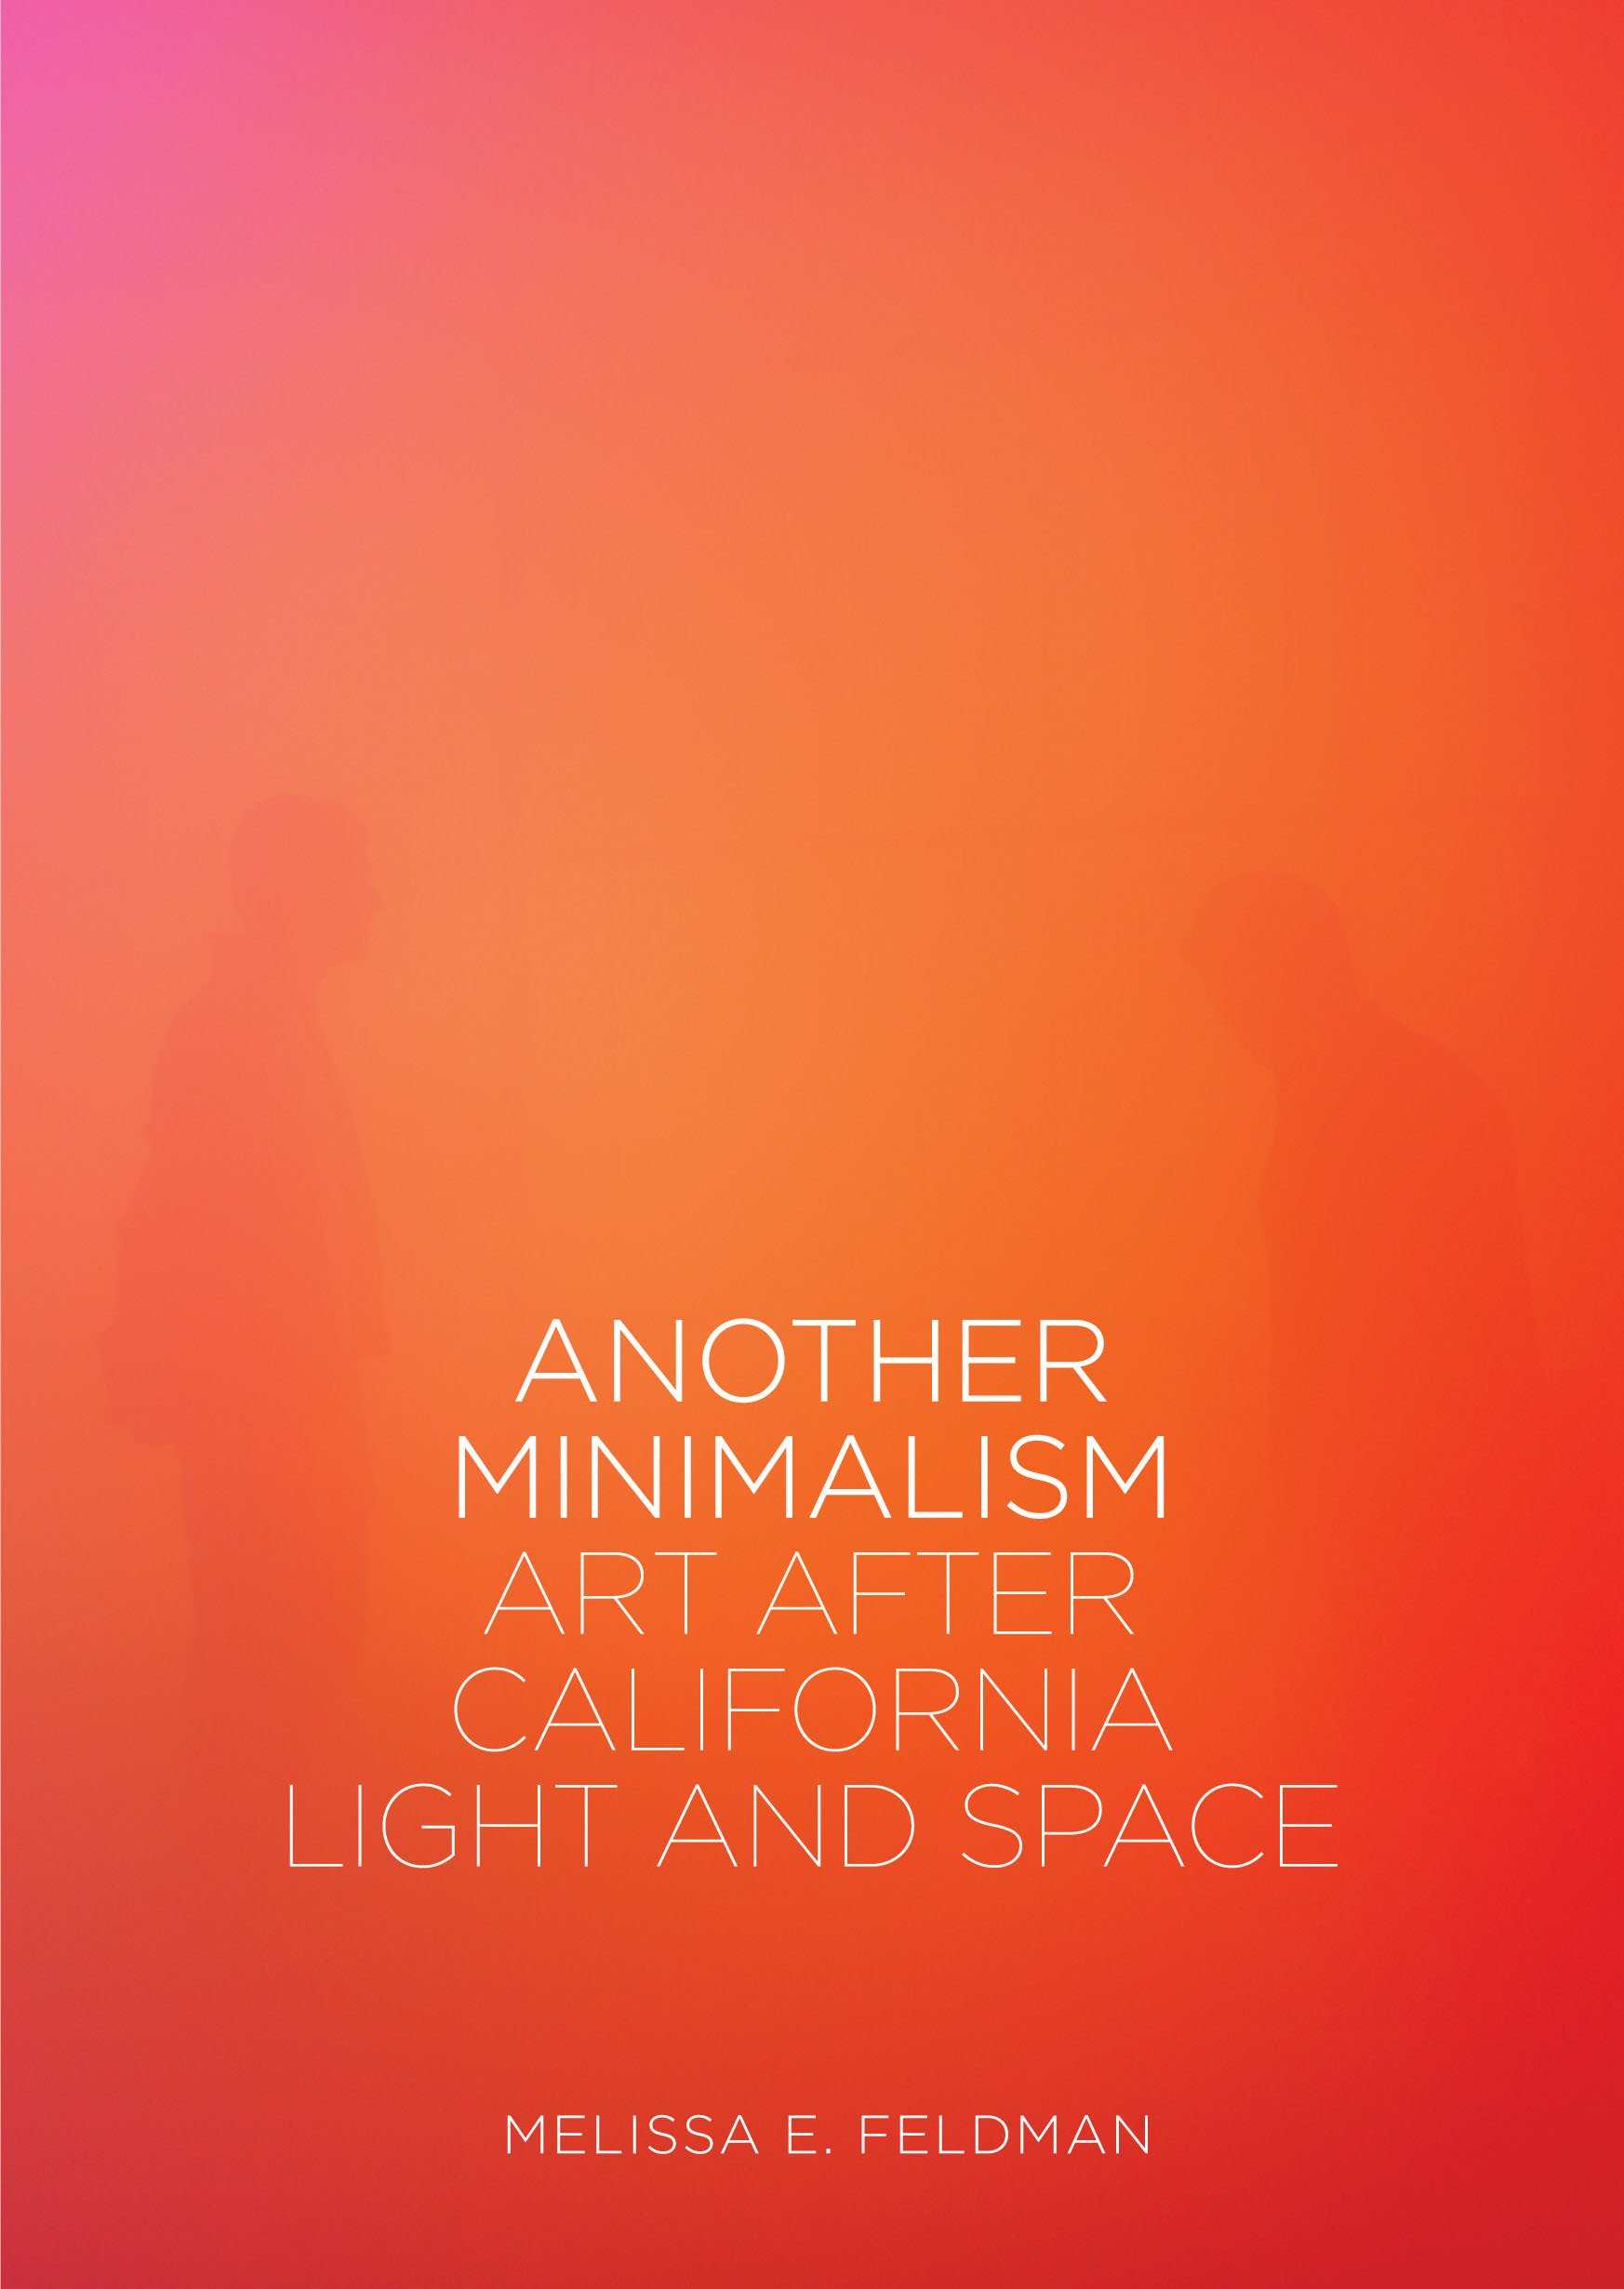 Another Minimalism: Art After California Light and Space ebook